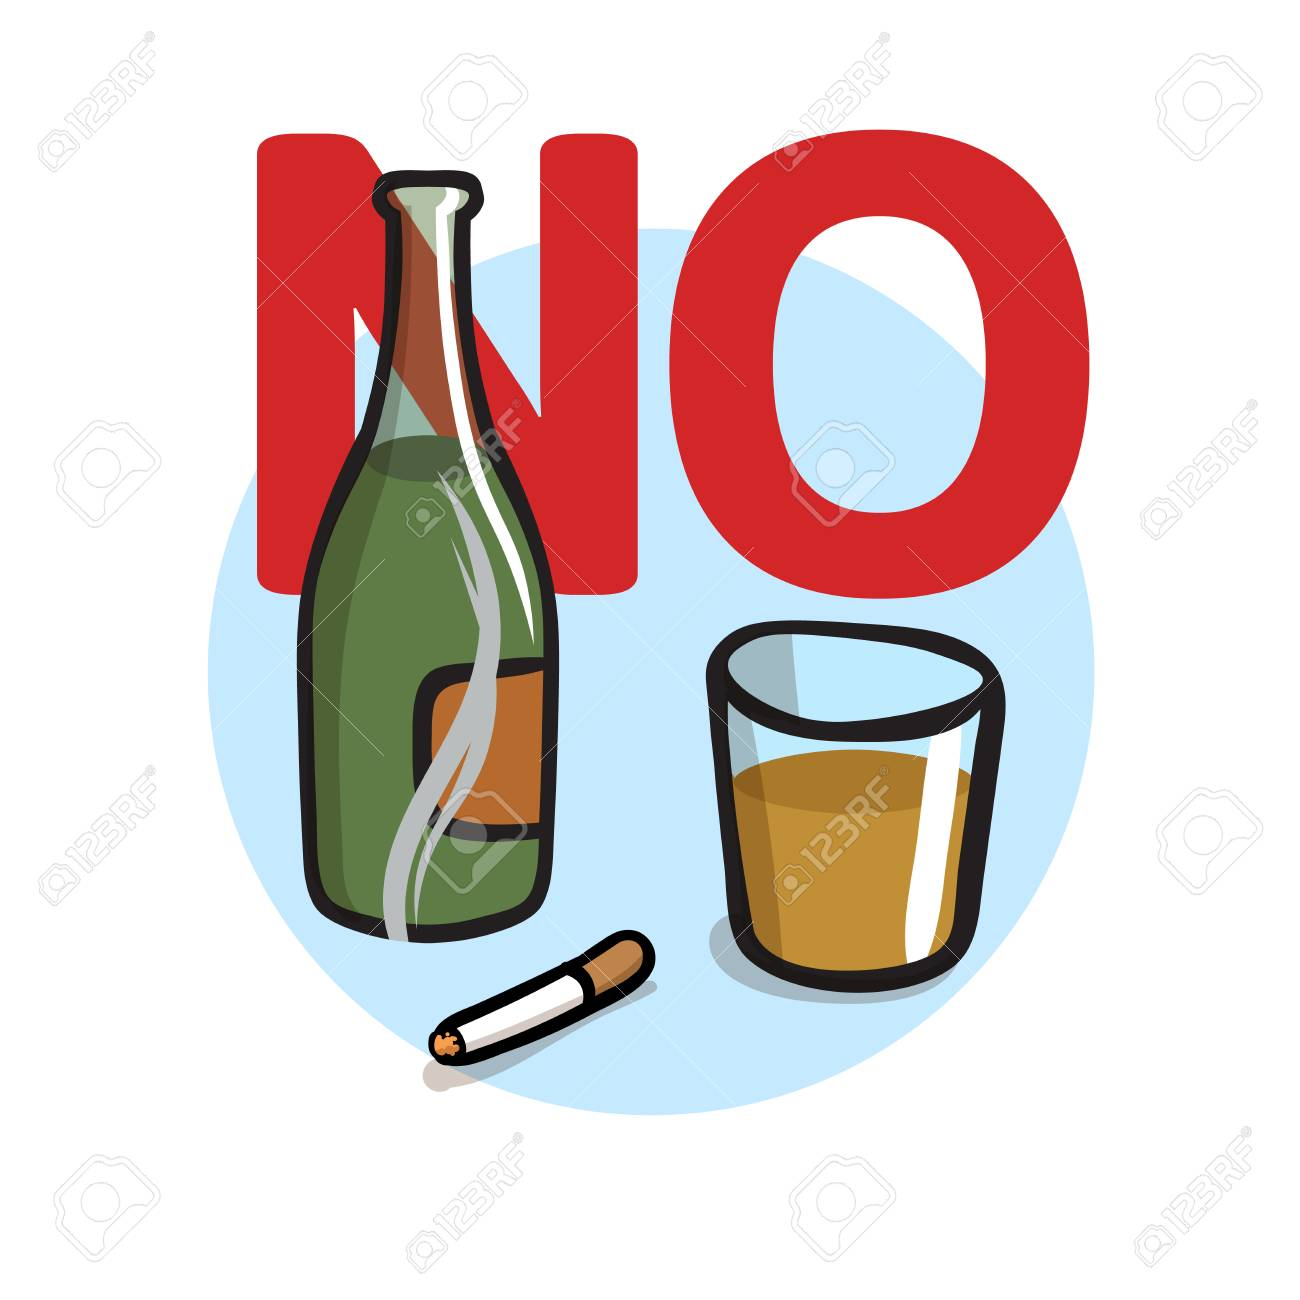 No Smoking, No Alcohol. Colorful flat vector illustration. Isolated on white background. - 109844453